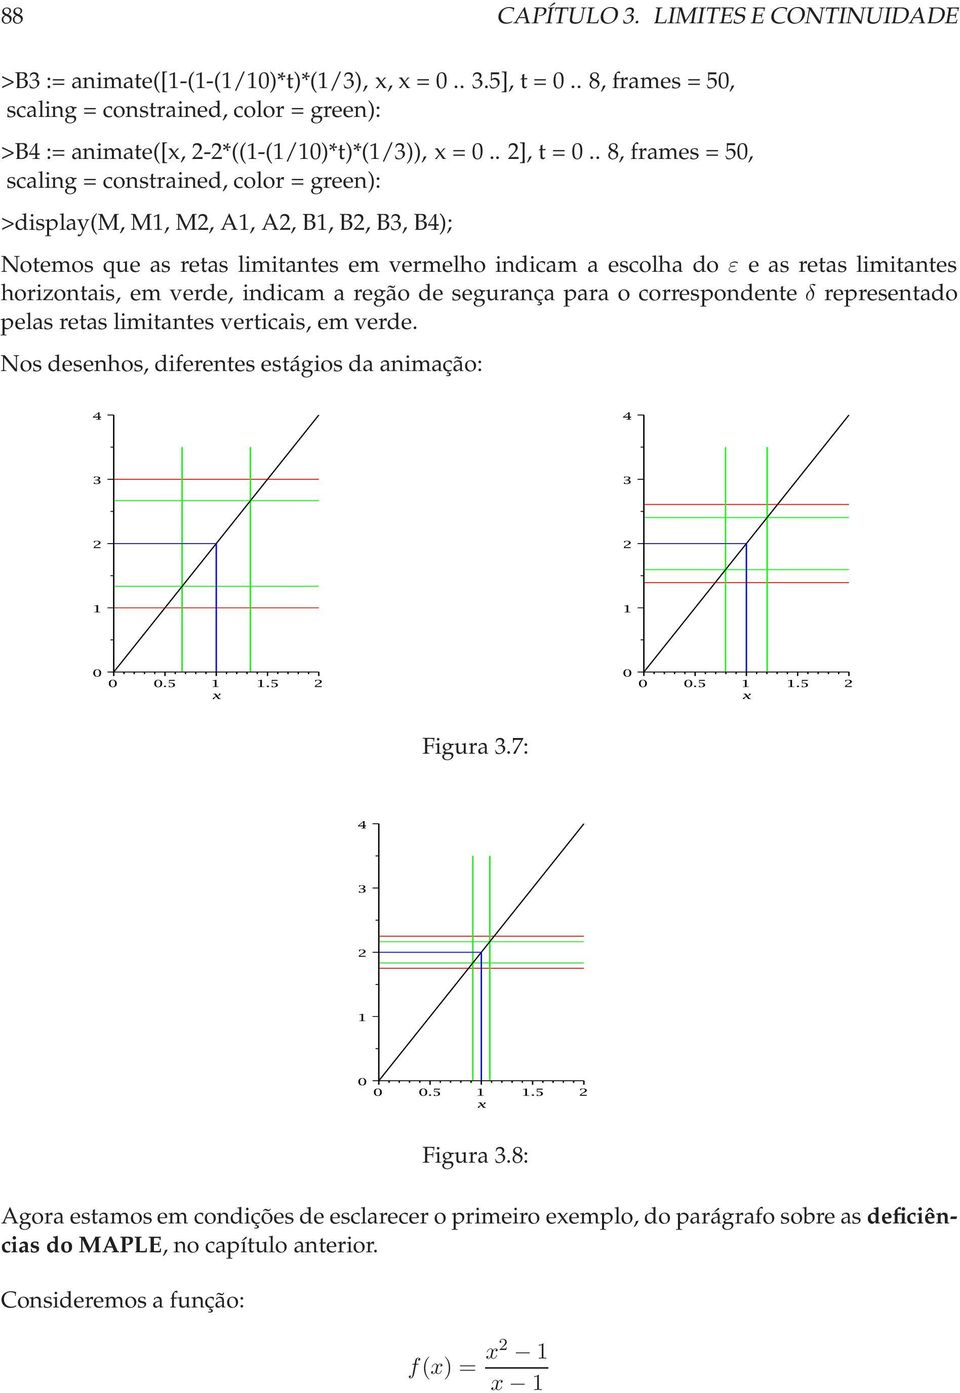 . 8, frames = 50, scaling = constrained, color = green): >display(m,m1, M2, A1, A2, B1,B2,B3, B4); Notemos que as retas limitantes em vermelho indicam a escolha do ε e as retas limitantes